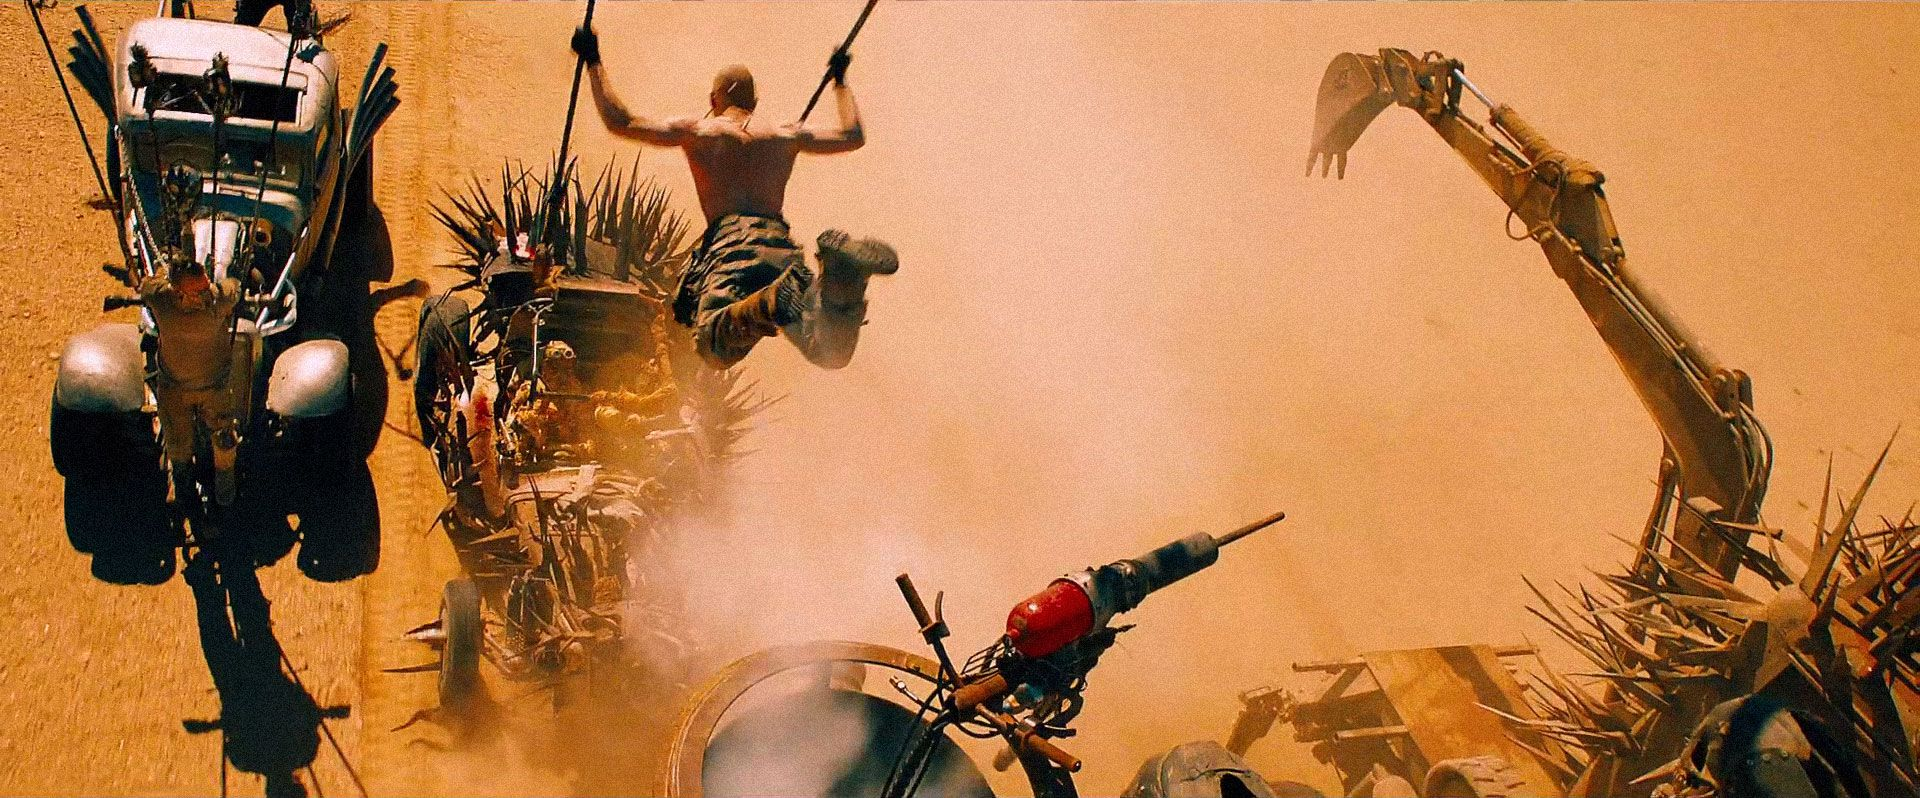 fury road review image 1